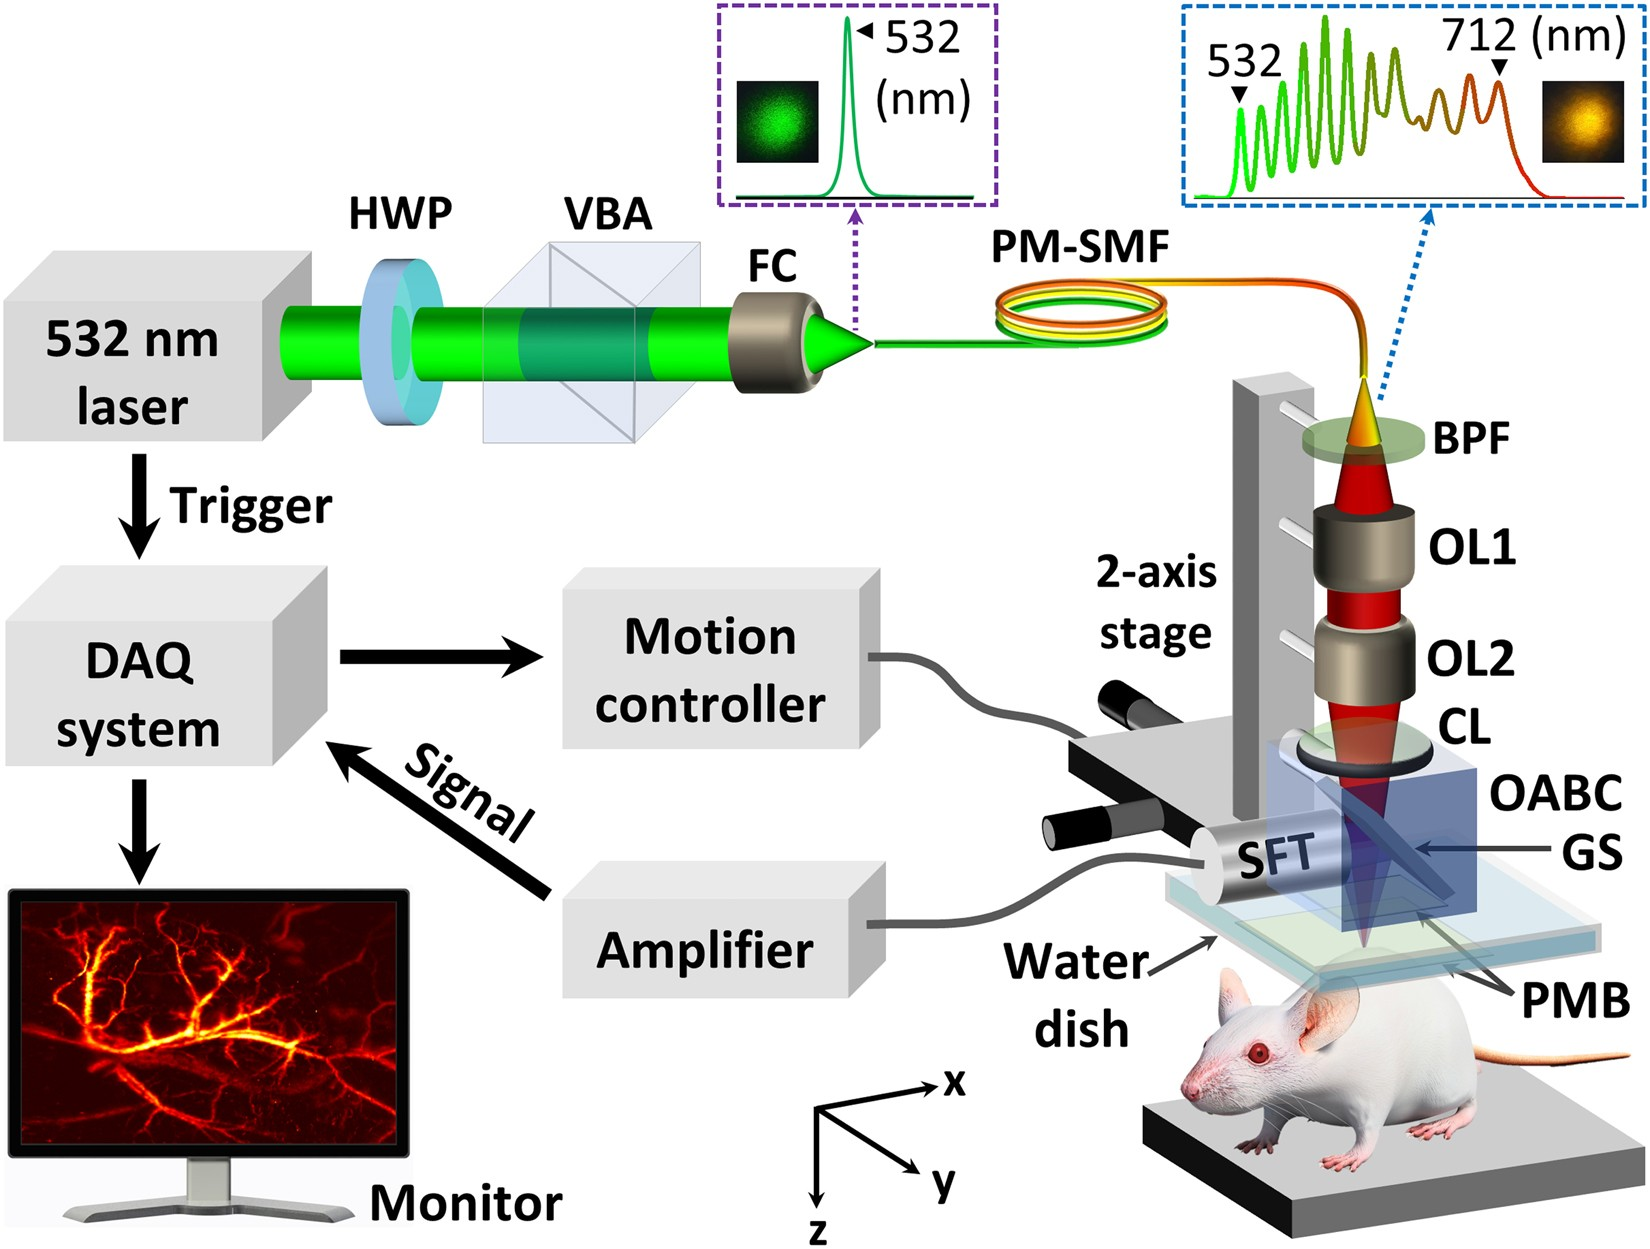 In vivo photoacoustic monitoring using 700-nm region Raman